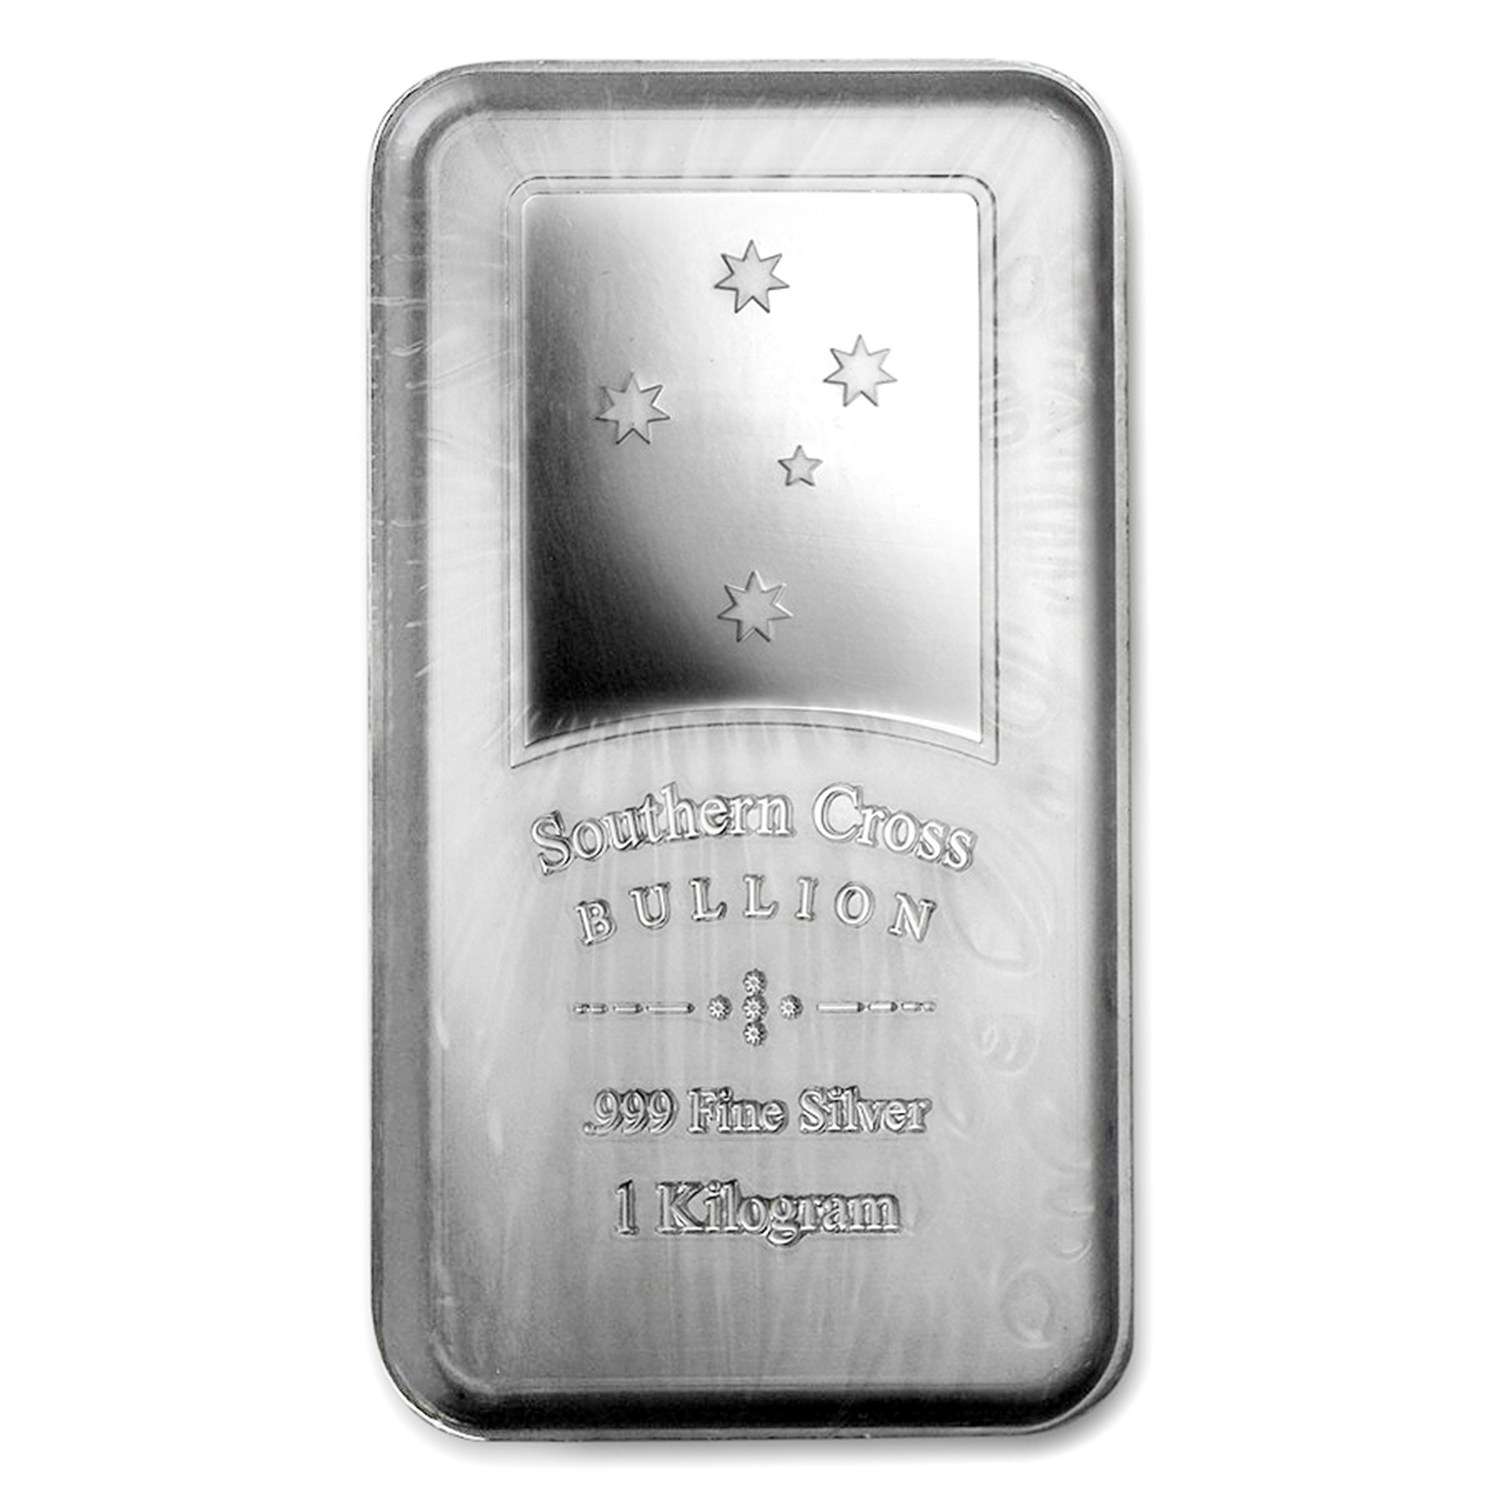 1 kilo Silver Bar - Southern Cross Bullion (Security Line)